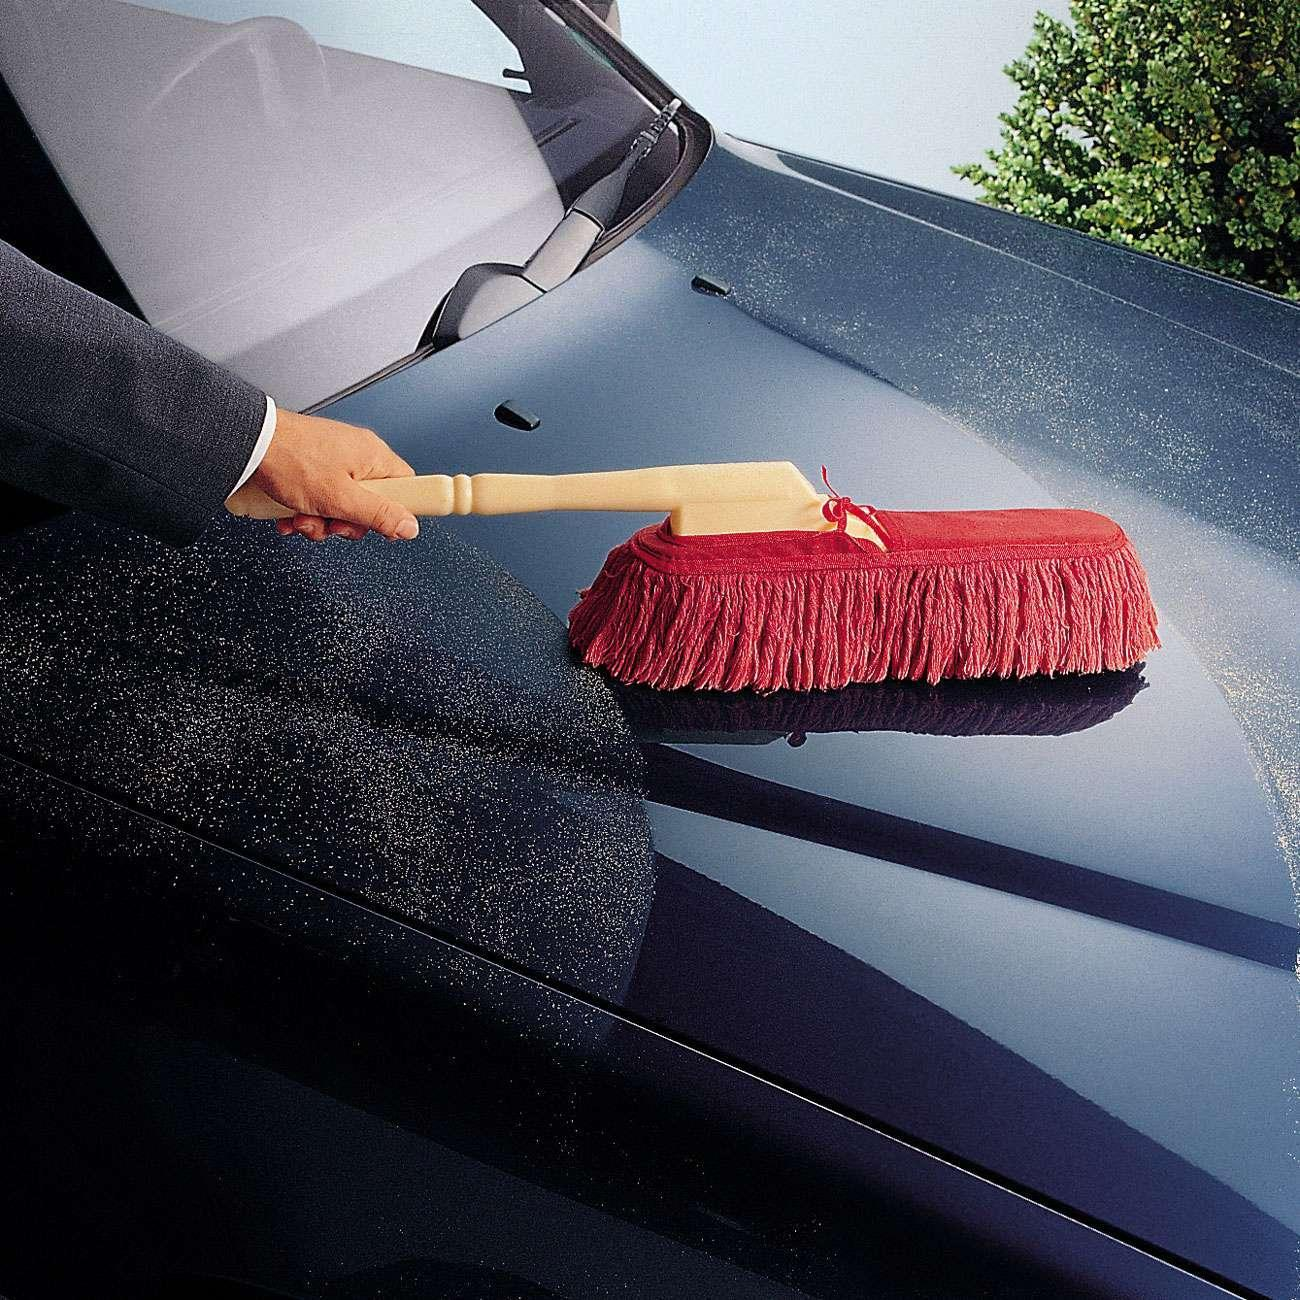 buy original california car duster online. Black Bedroom Furniture Sets. Home Design Ideas